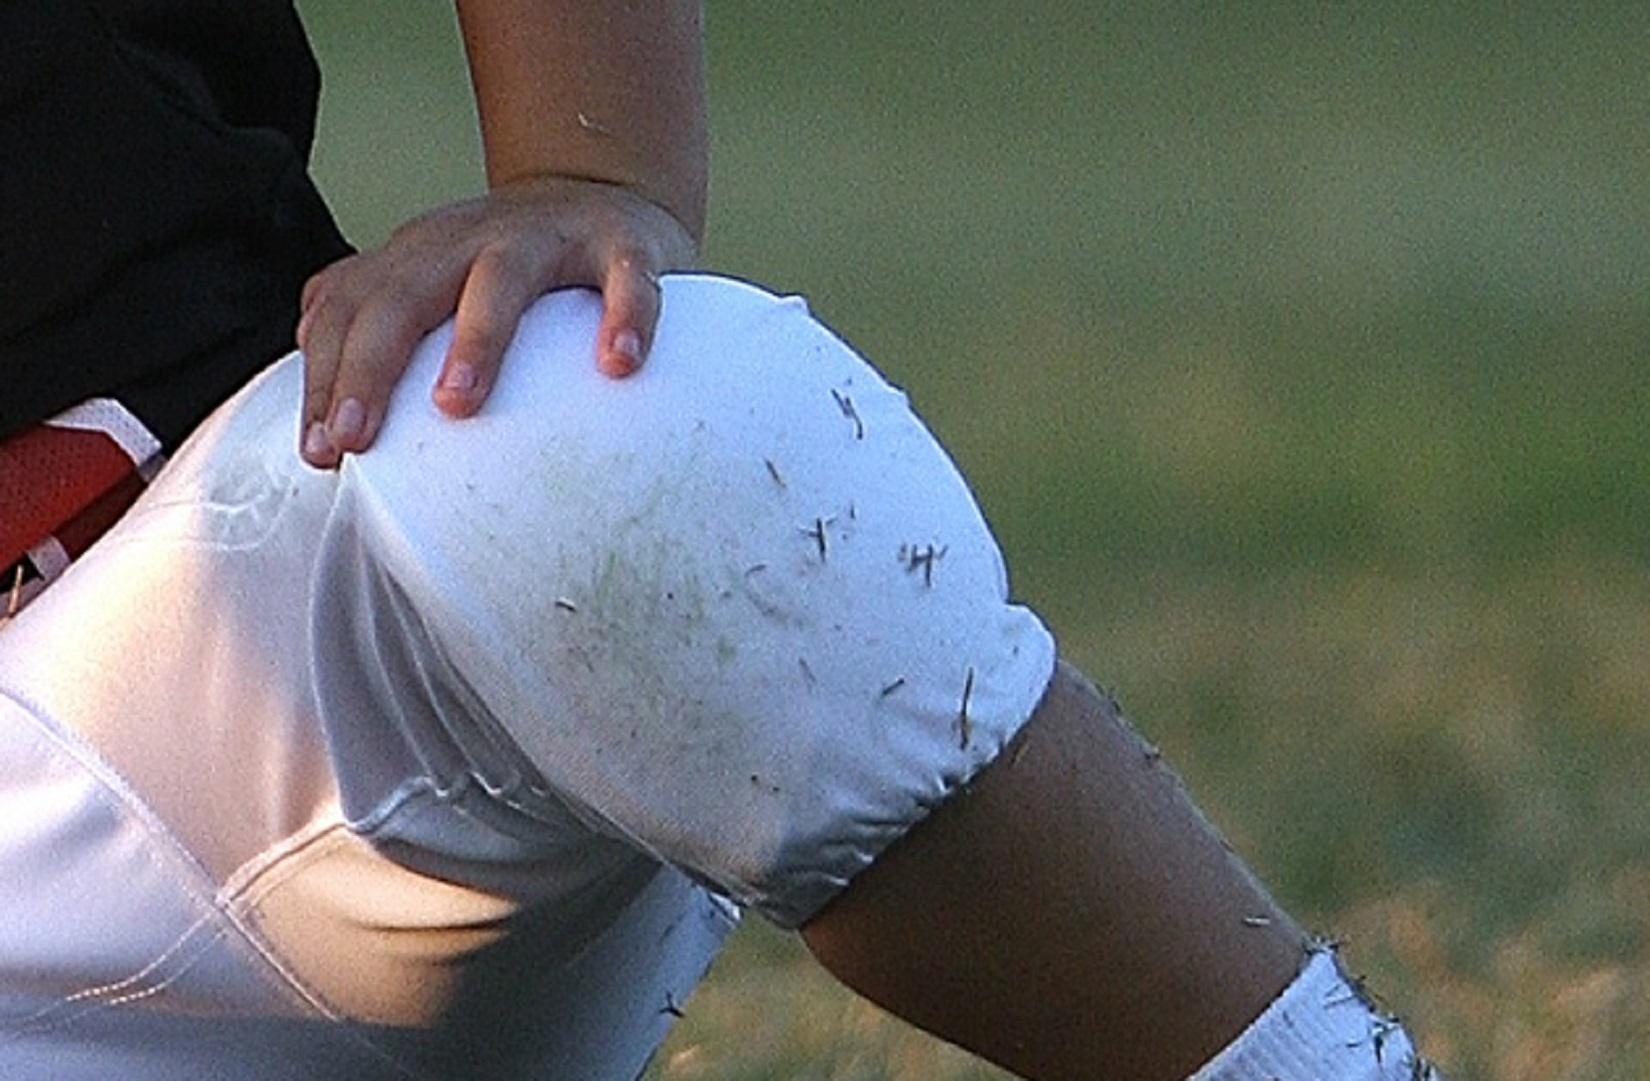 Grass stained knees are a common problem.